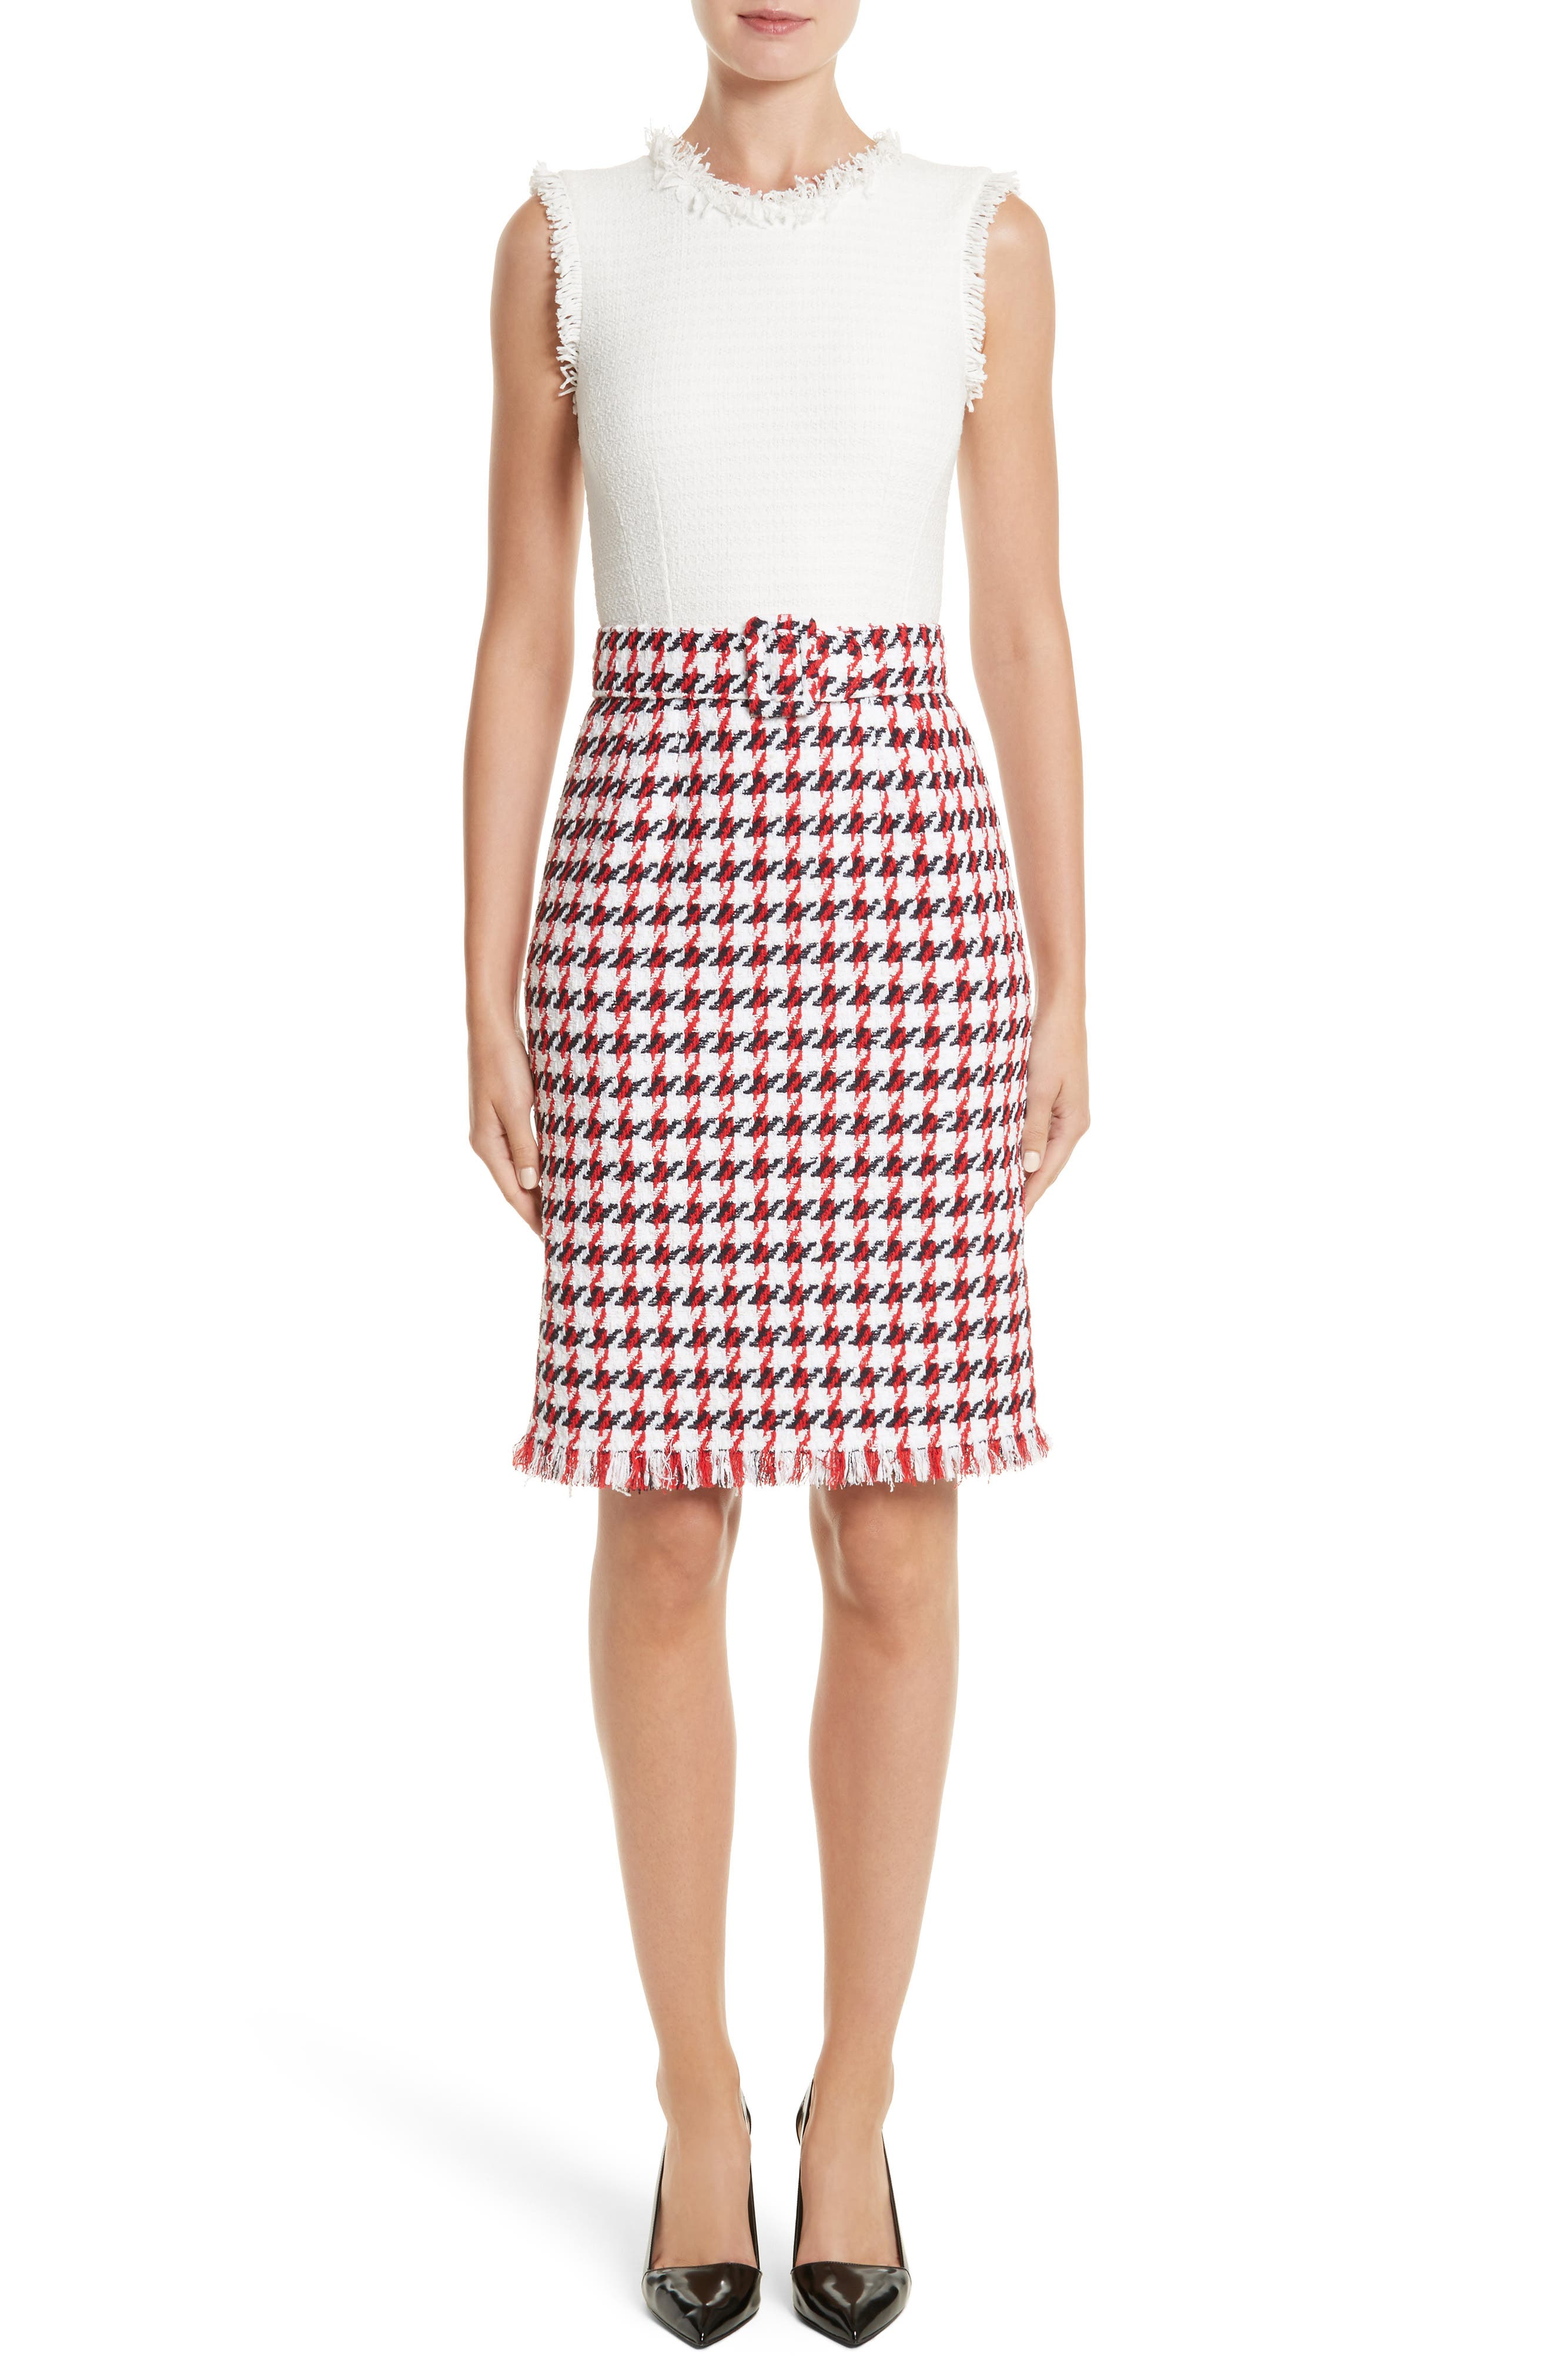 Bicolor Houndstooth Tweed Dress,                             Main thumbnail 1, color,